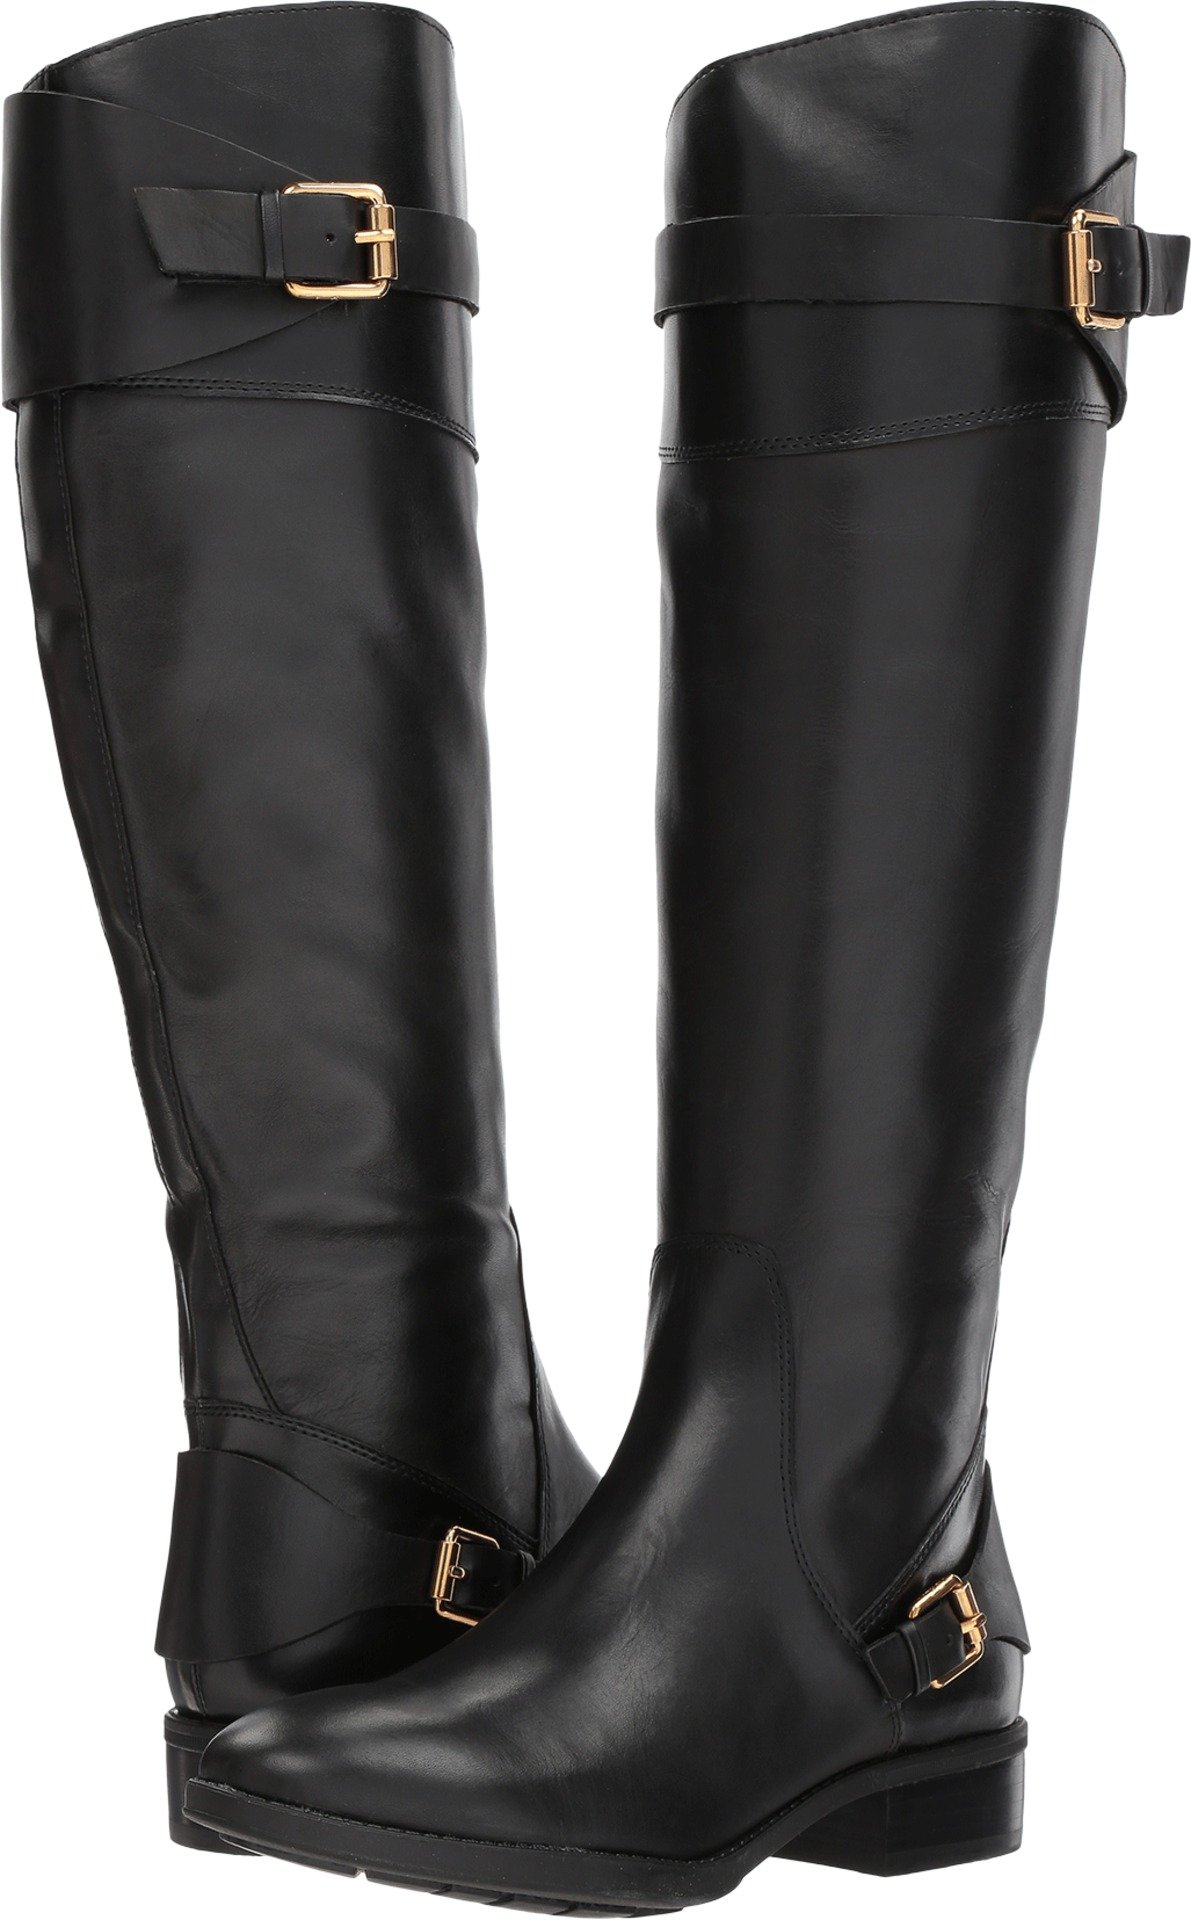 Sam Edelman Women's Portman Knee High Boot, Black, 8.5 Medium US